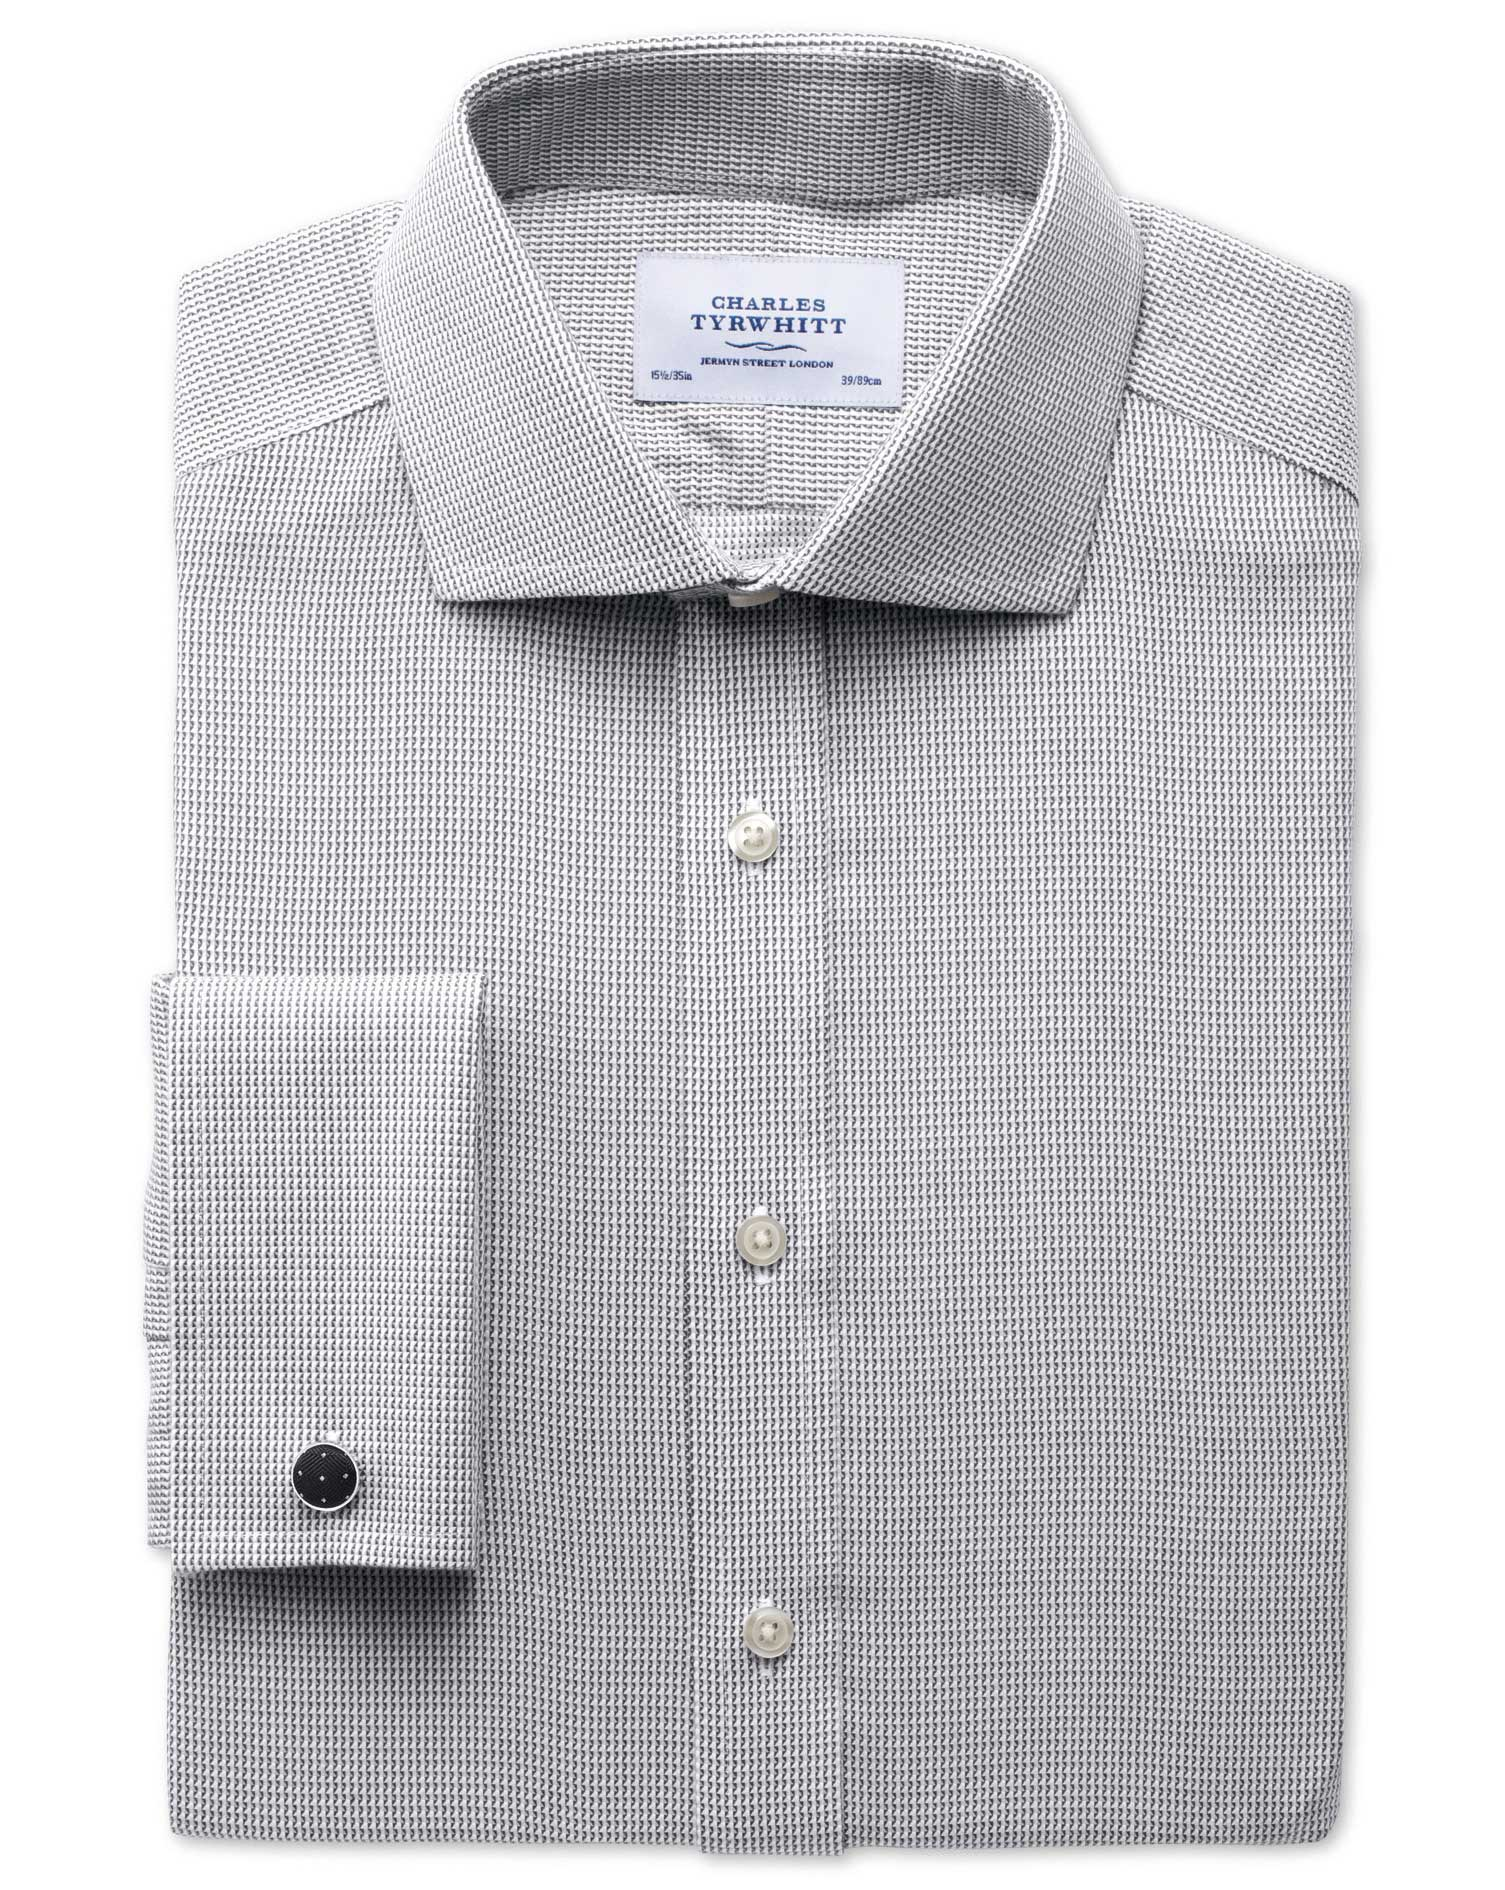 Slim Fit Cutaway Collar Non-Iron Grey Cotton Formal Shirt Double Cuff Size 17/34 by Charles Tyrwhitt